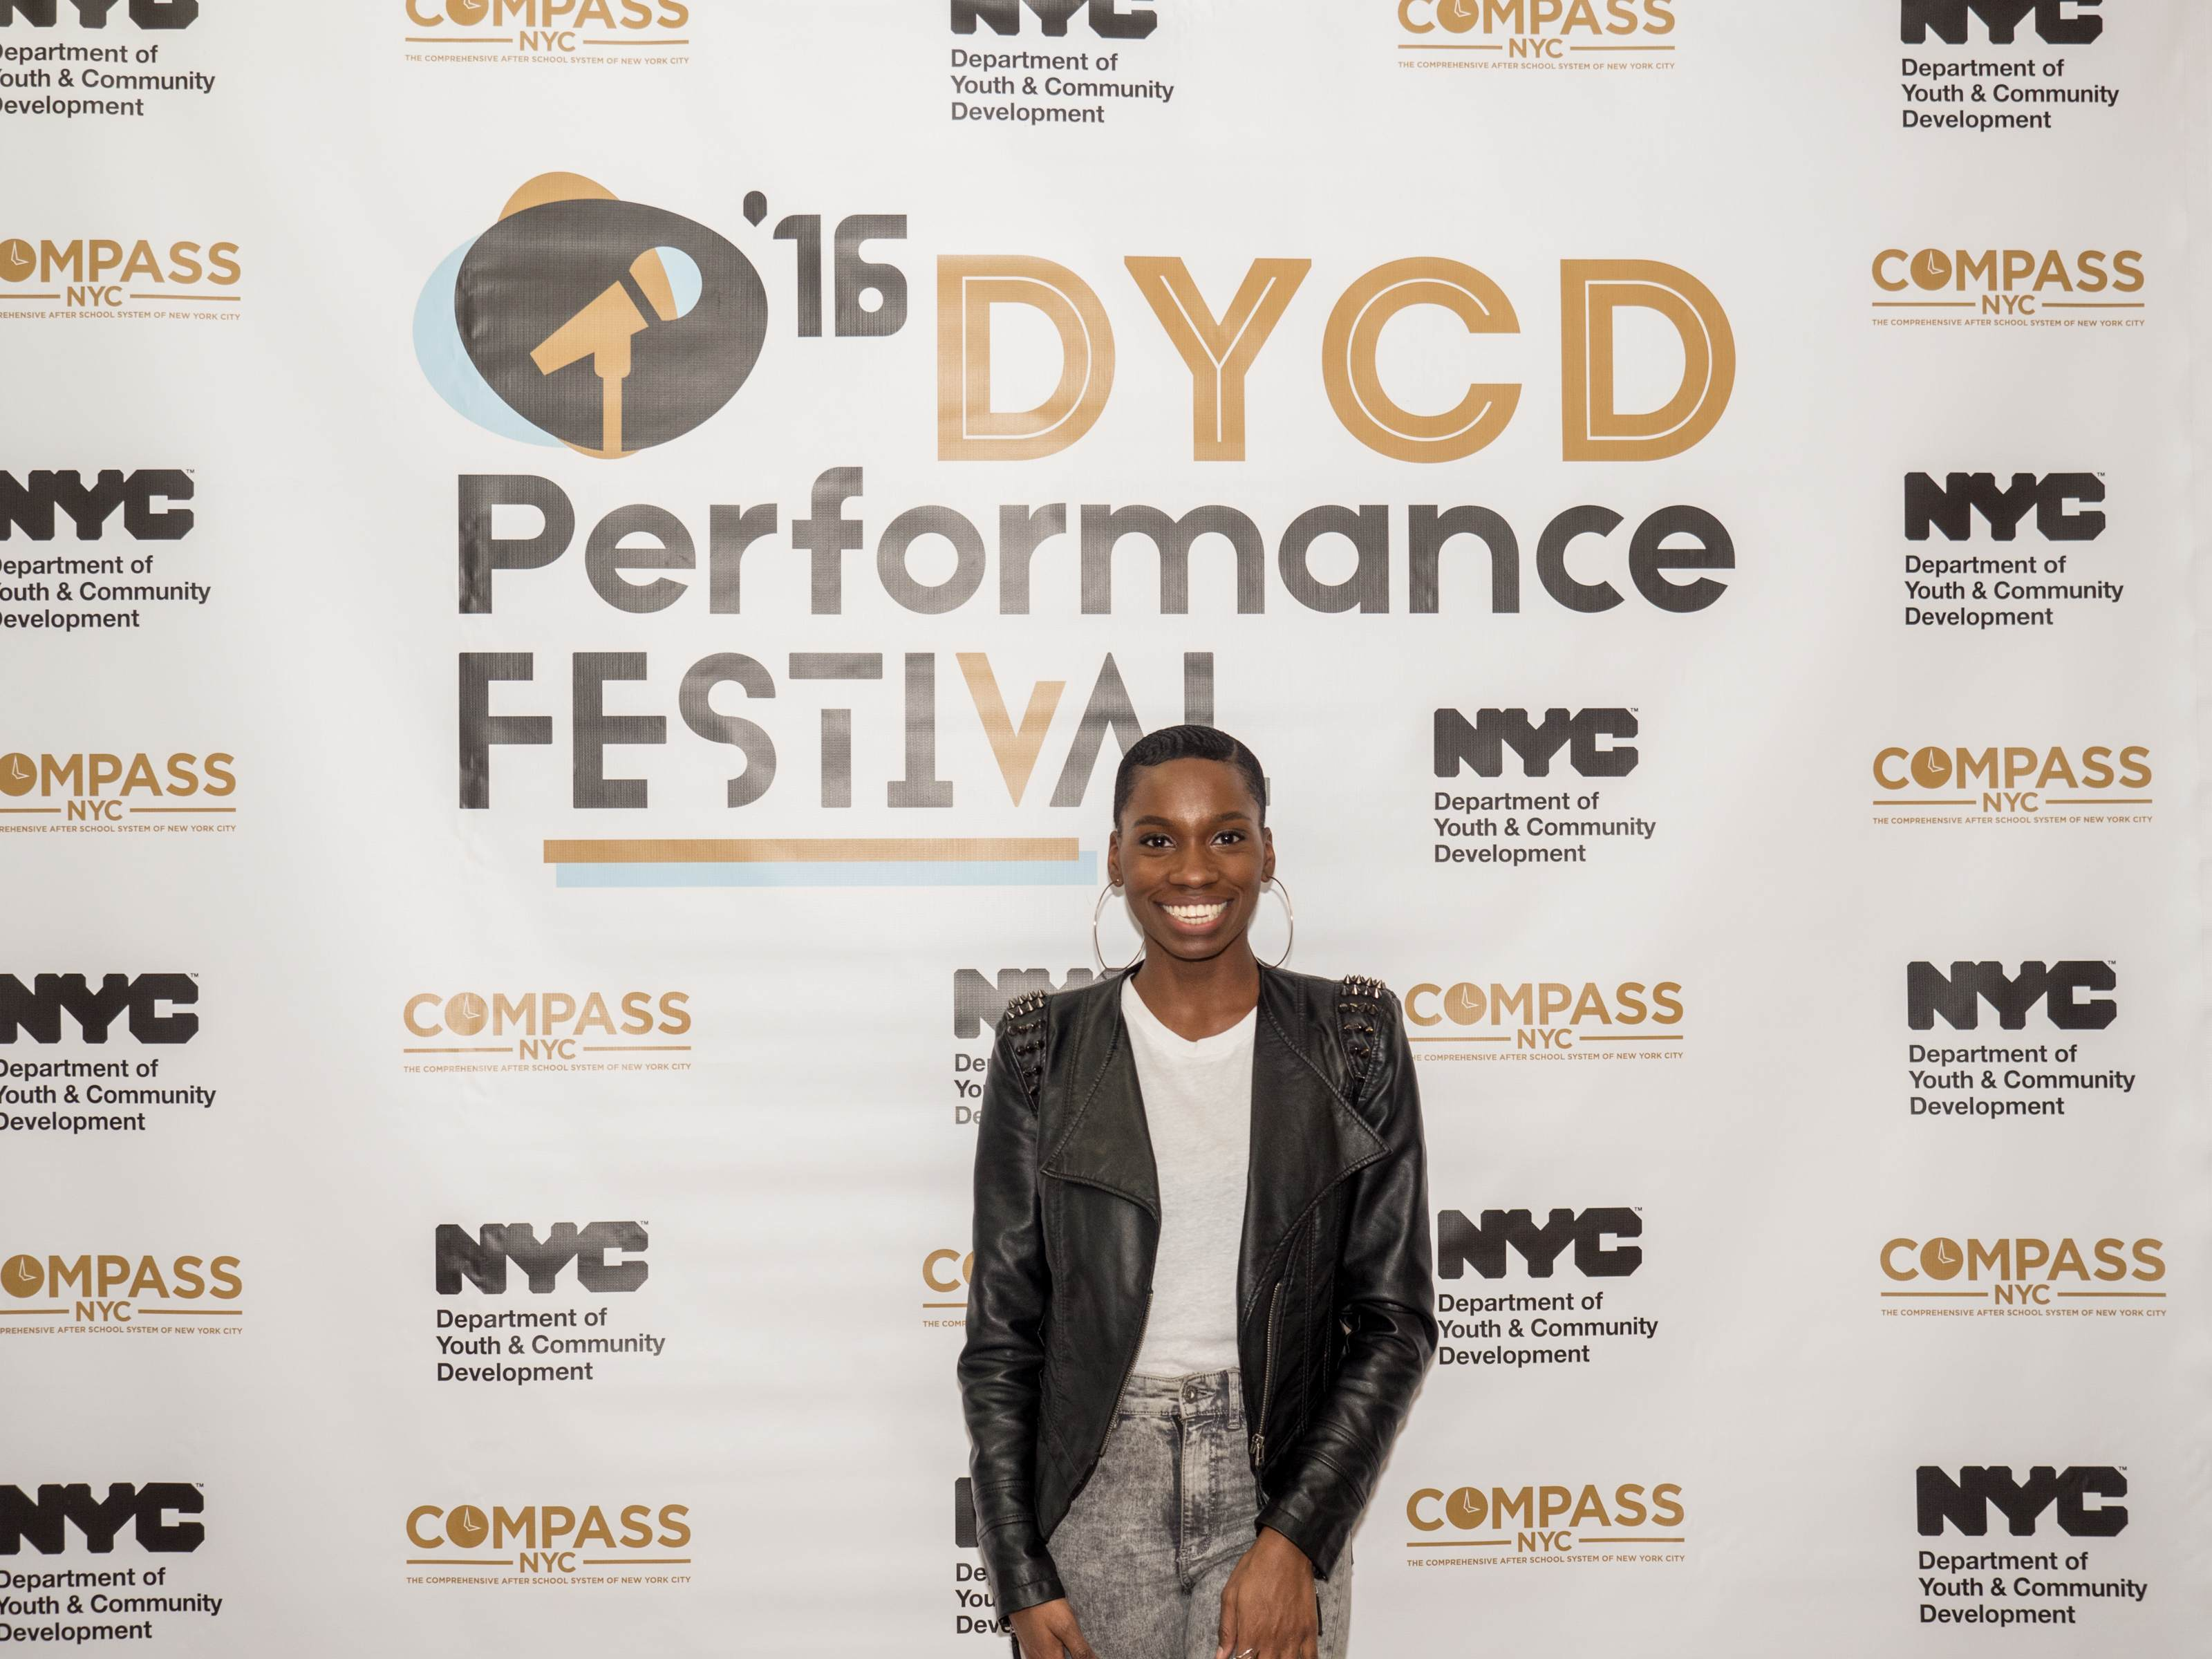 A guest posing in front of a white step and repeat with the DYCD Performance Festival logo large and centered, the DYCD and COMPASS logos repeat in a pattern around the Performance Festival logo.